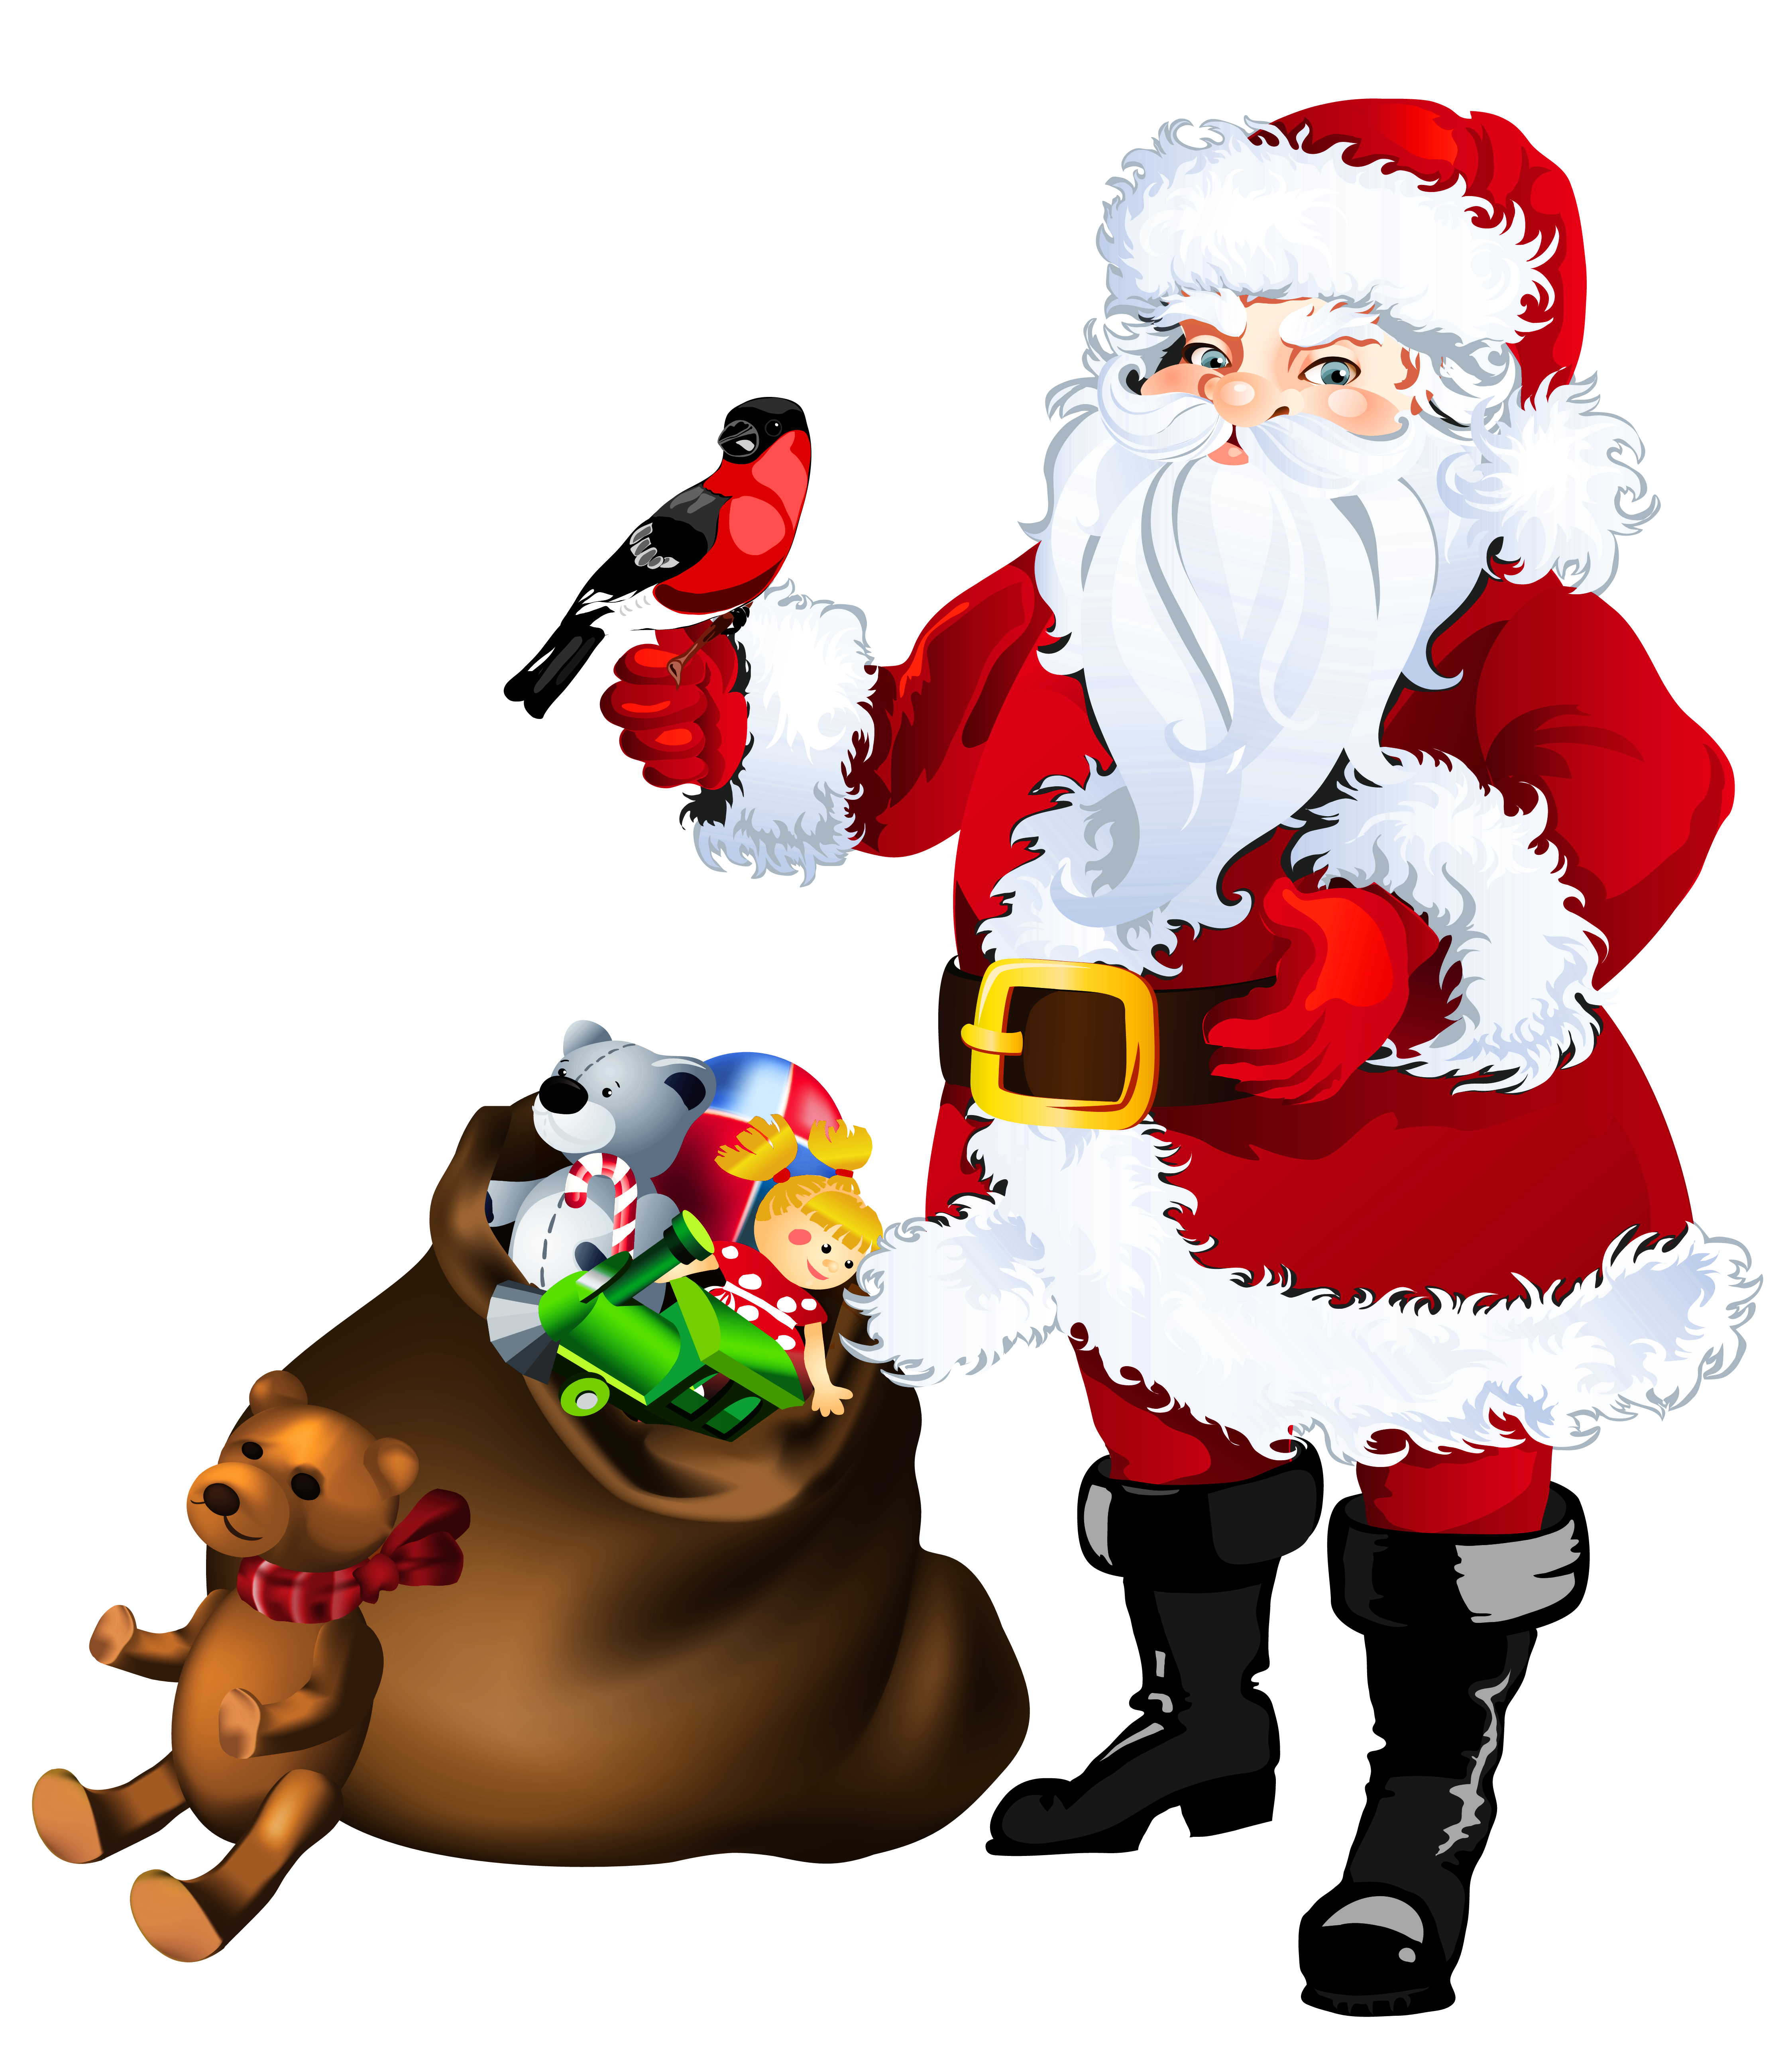 Xmas clipart toy. Tubes noel pere christmas